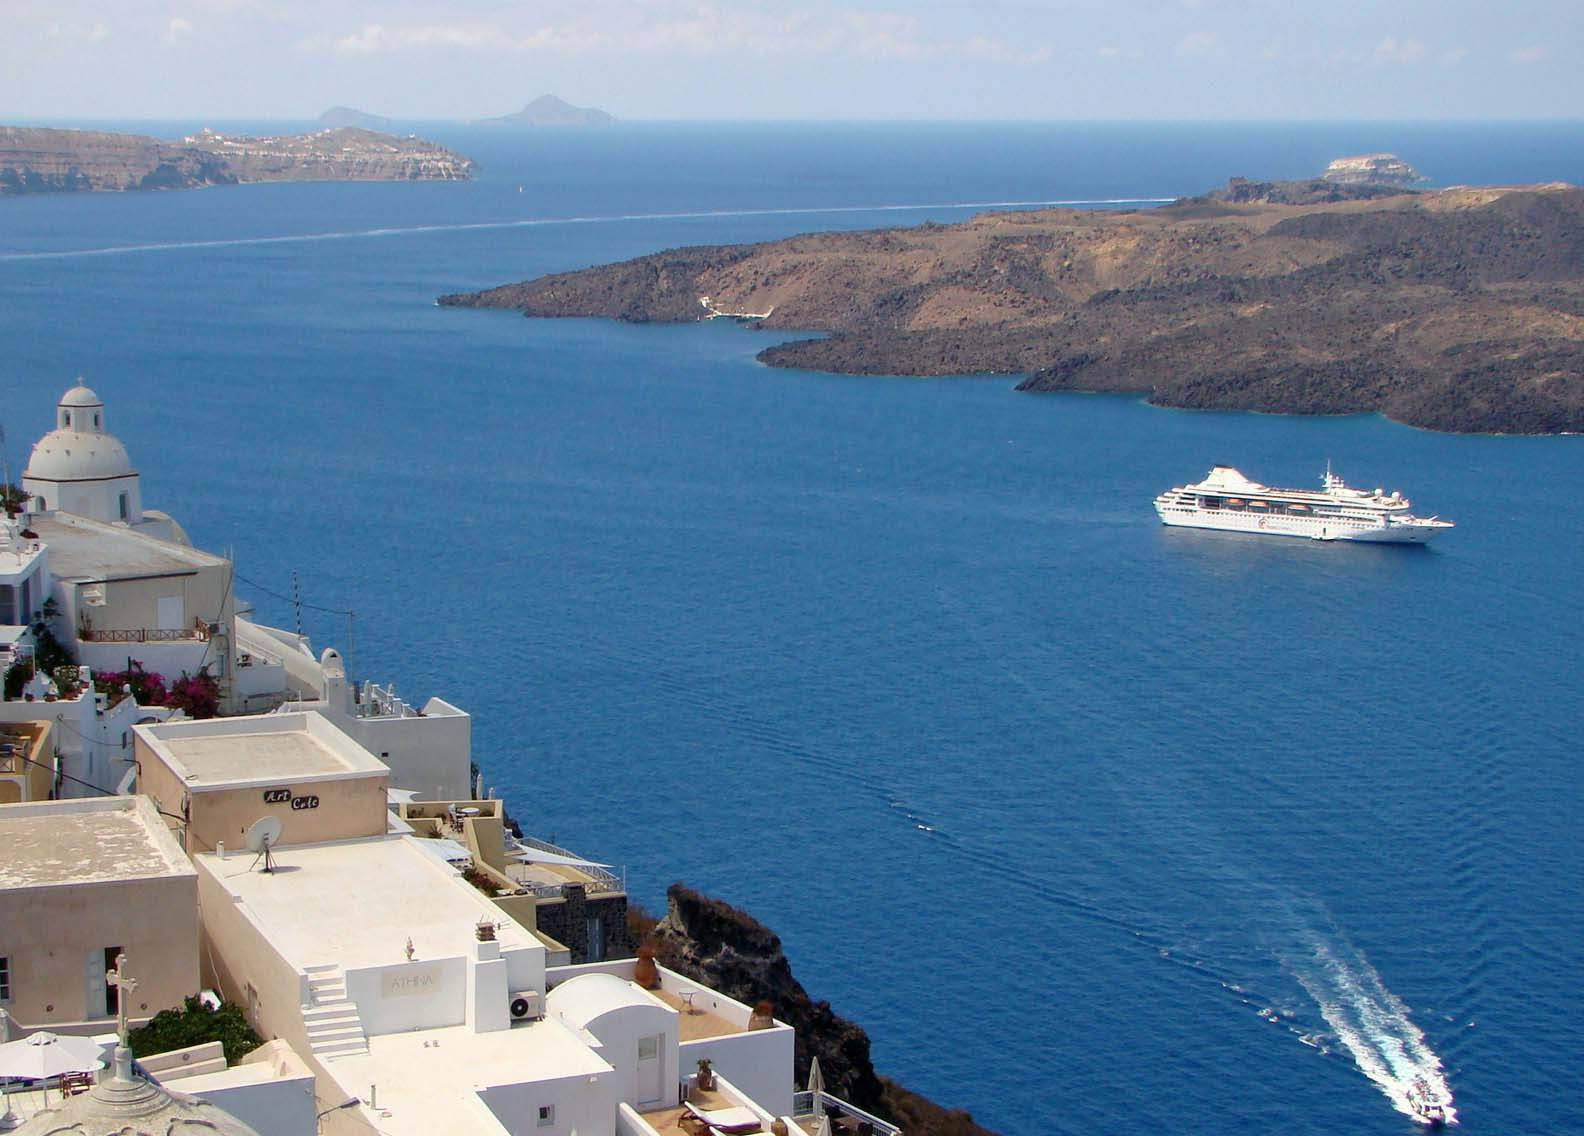 Cruising can be an economical way to visit expensive destinations.